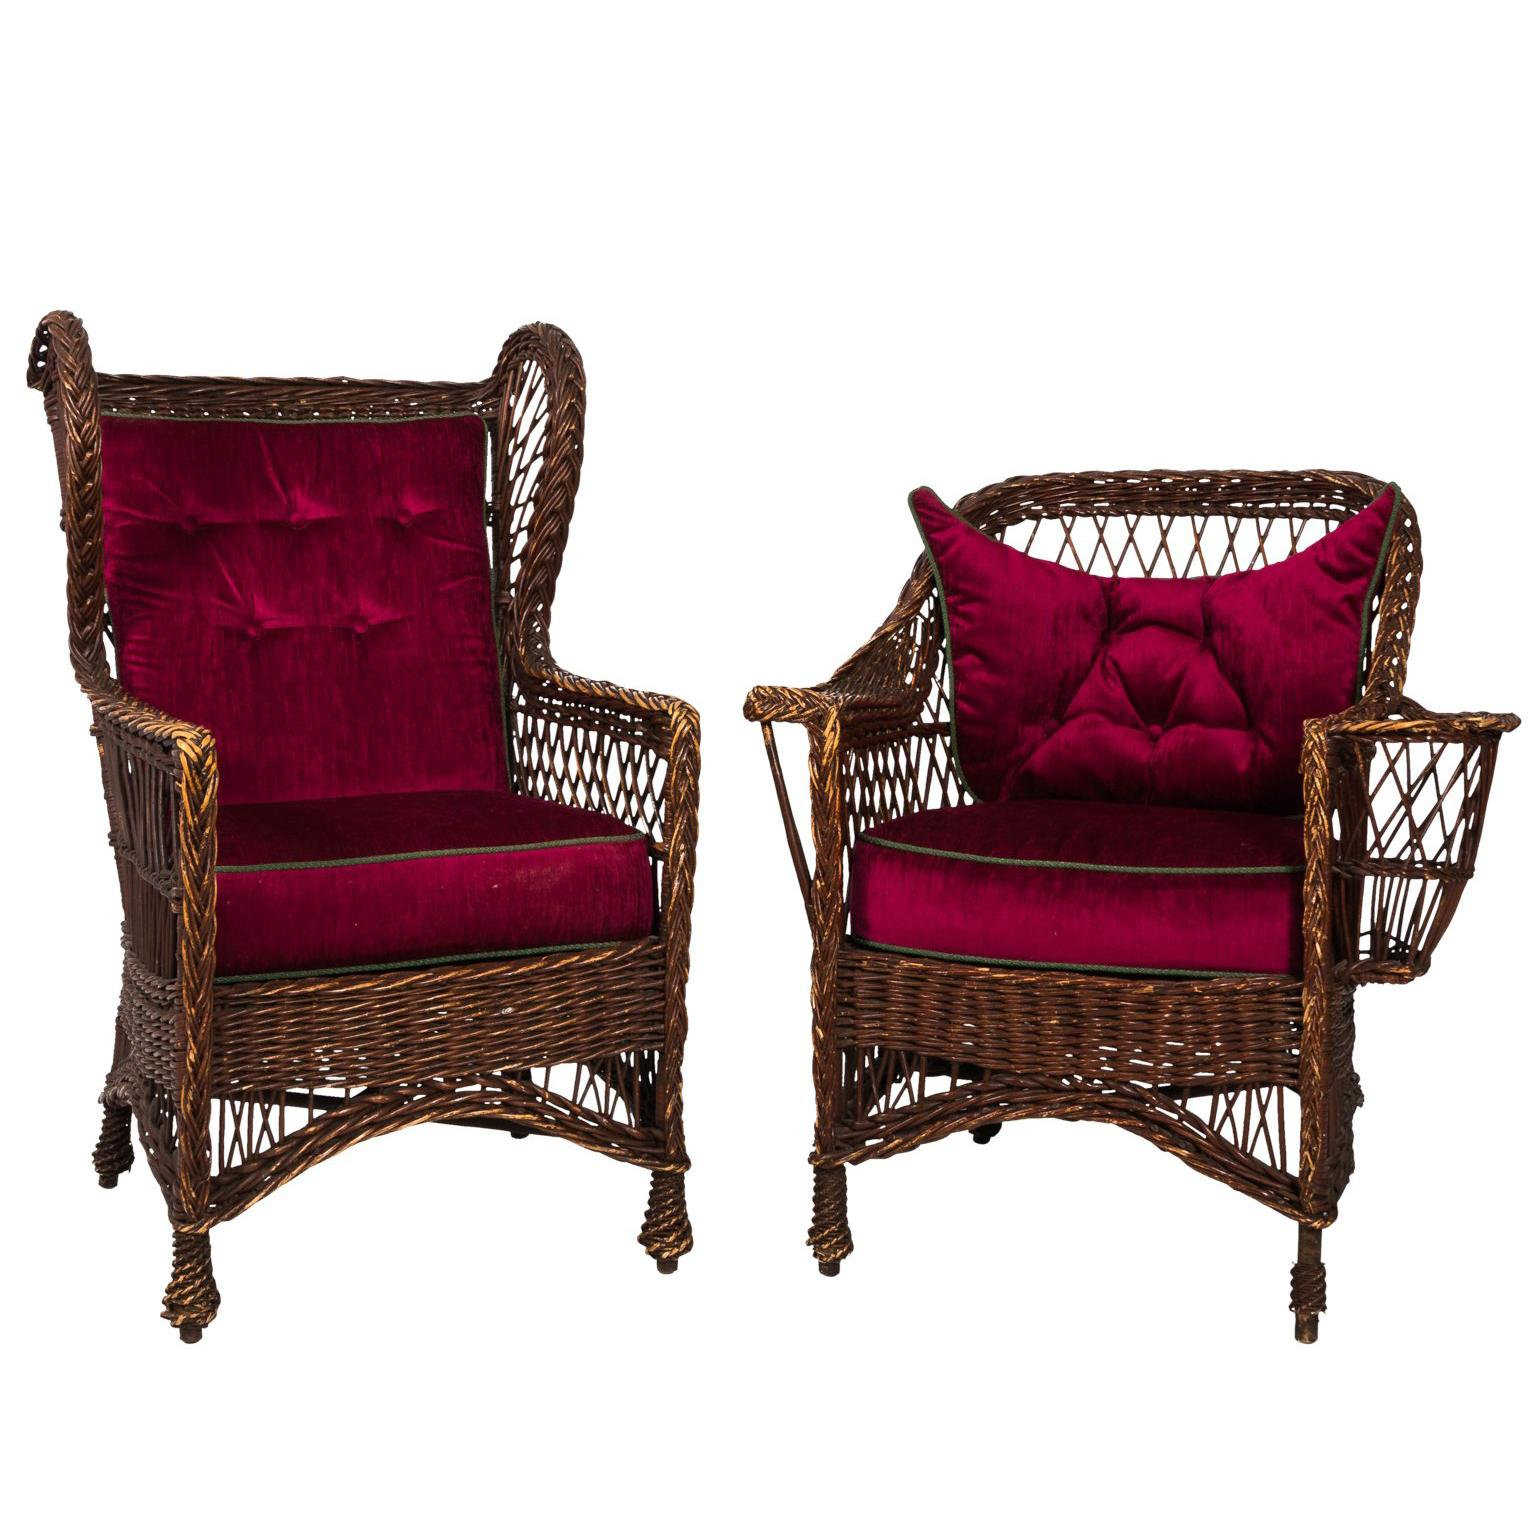 wicker chair for sale banquet covers derry victorian at 1stdibs